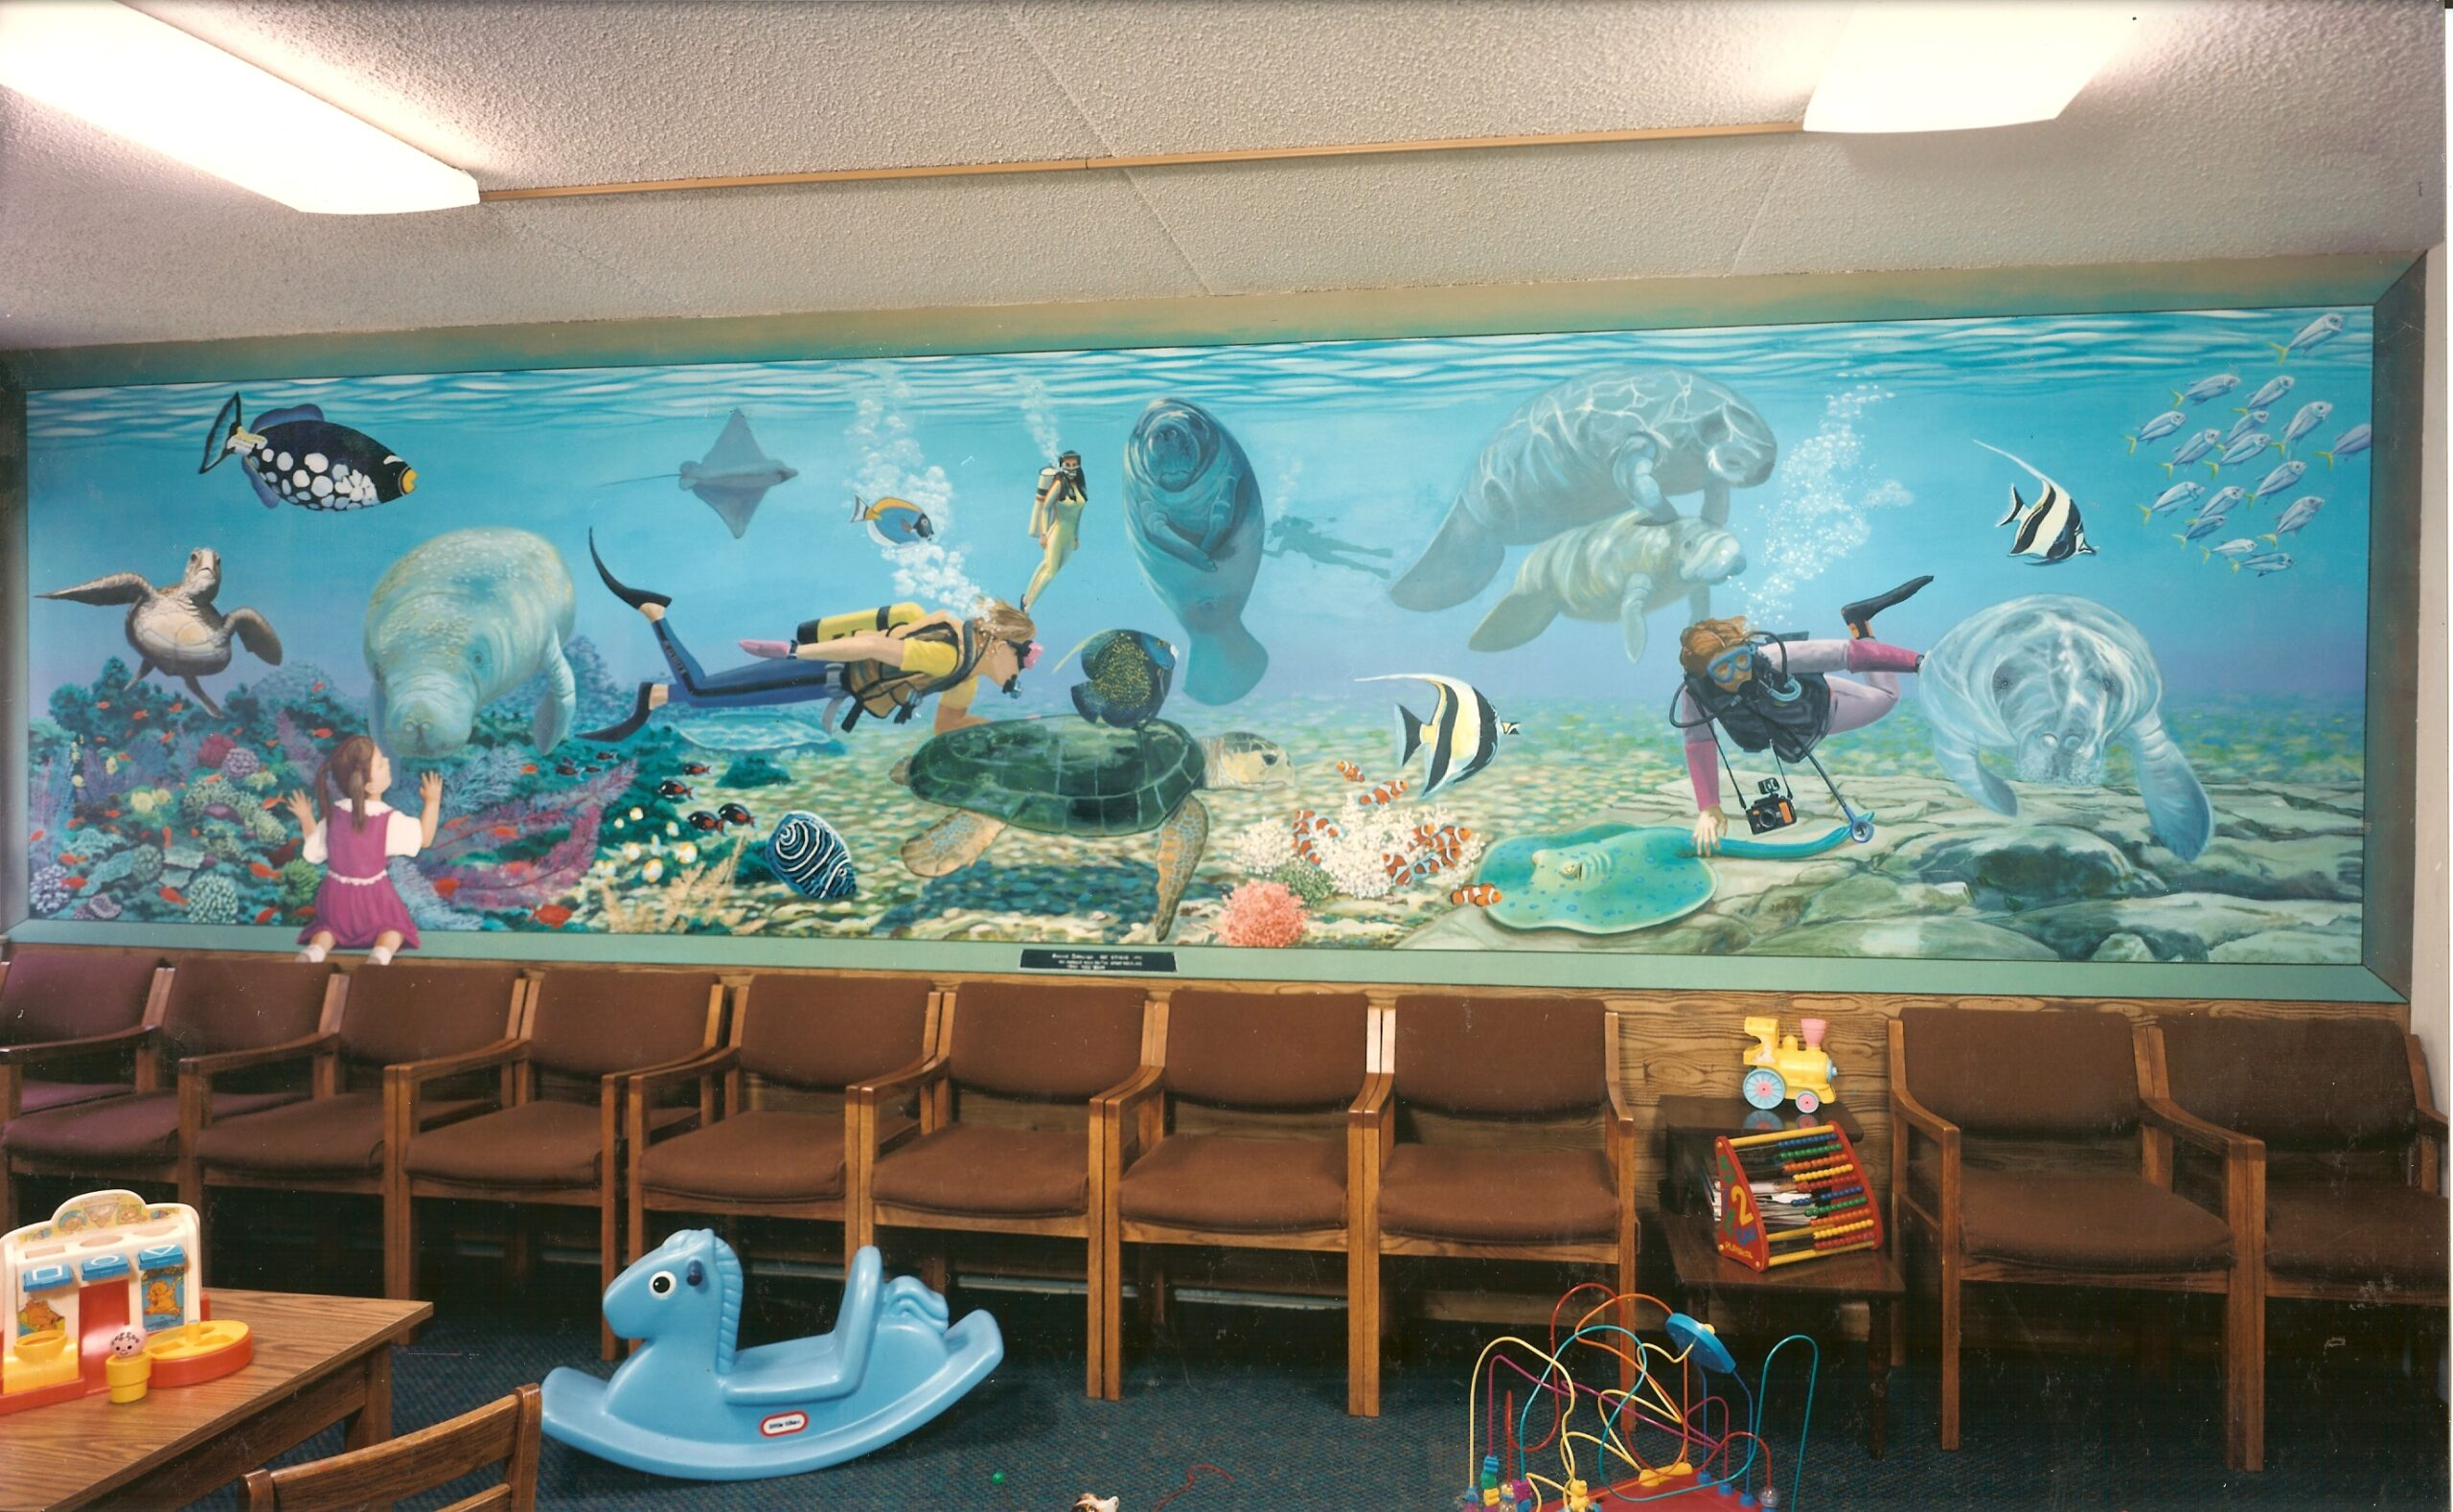 bonnie siracusa murals fine art salt water aquarium mural for dr klein s office waiting room